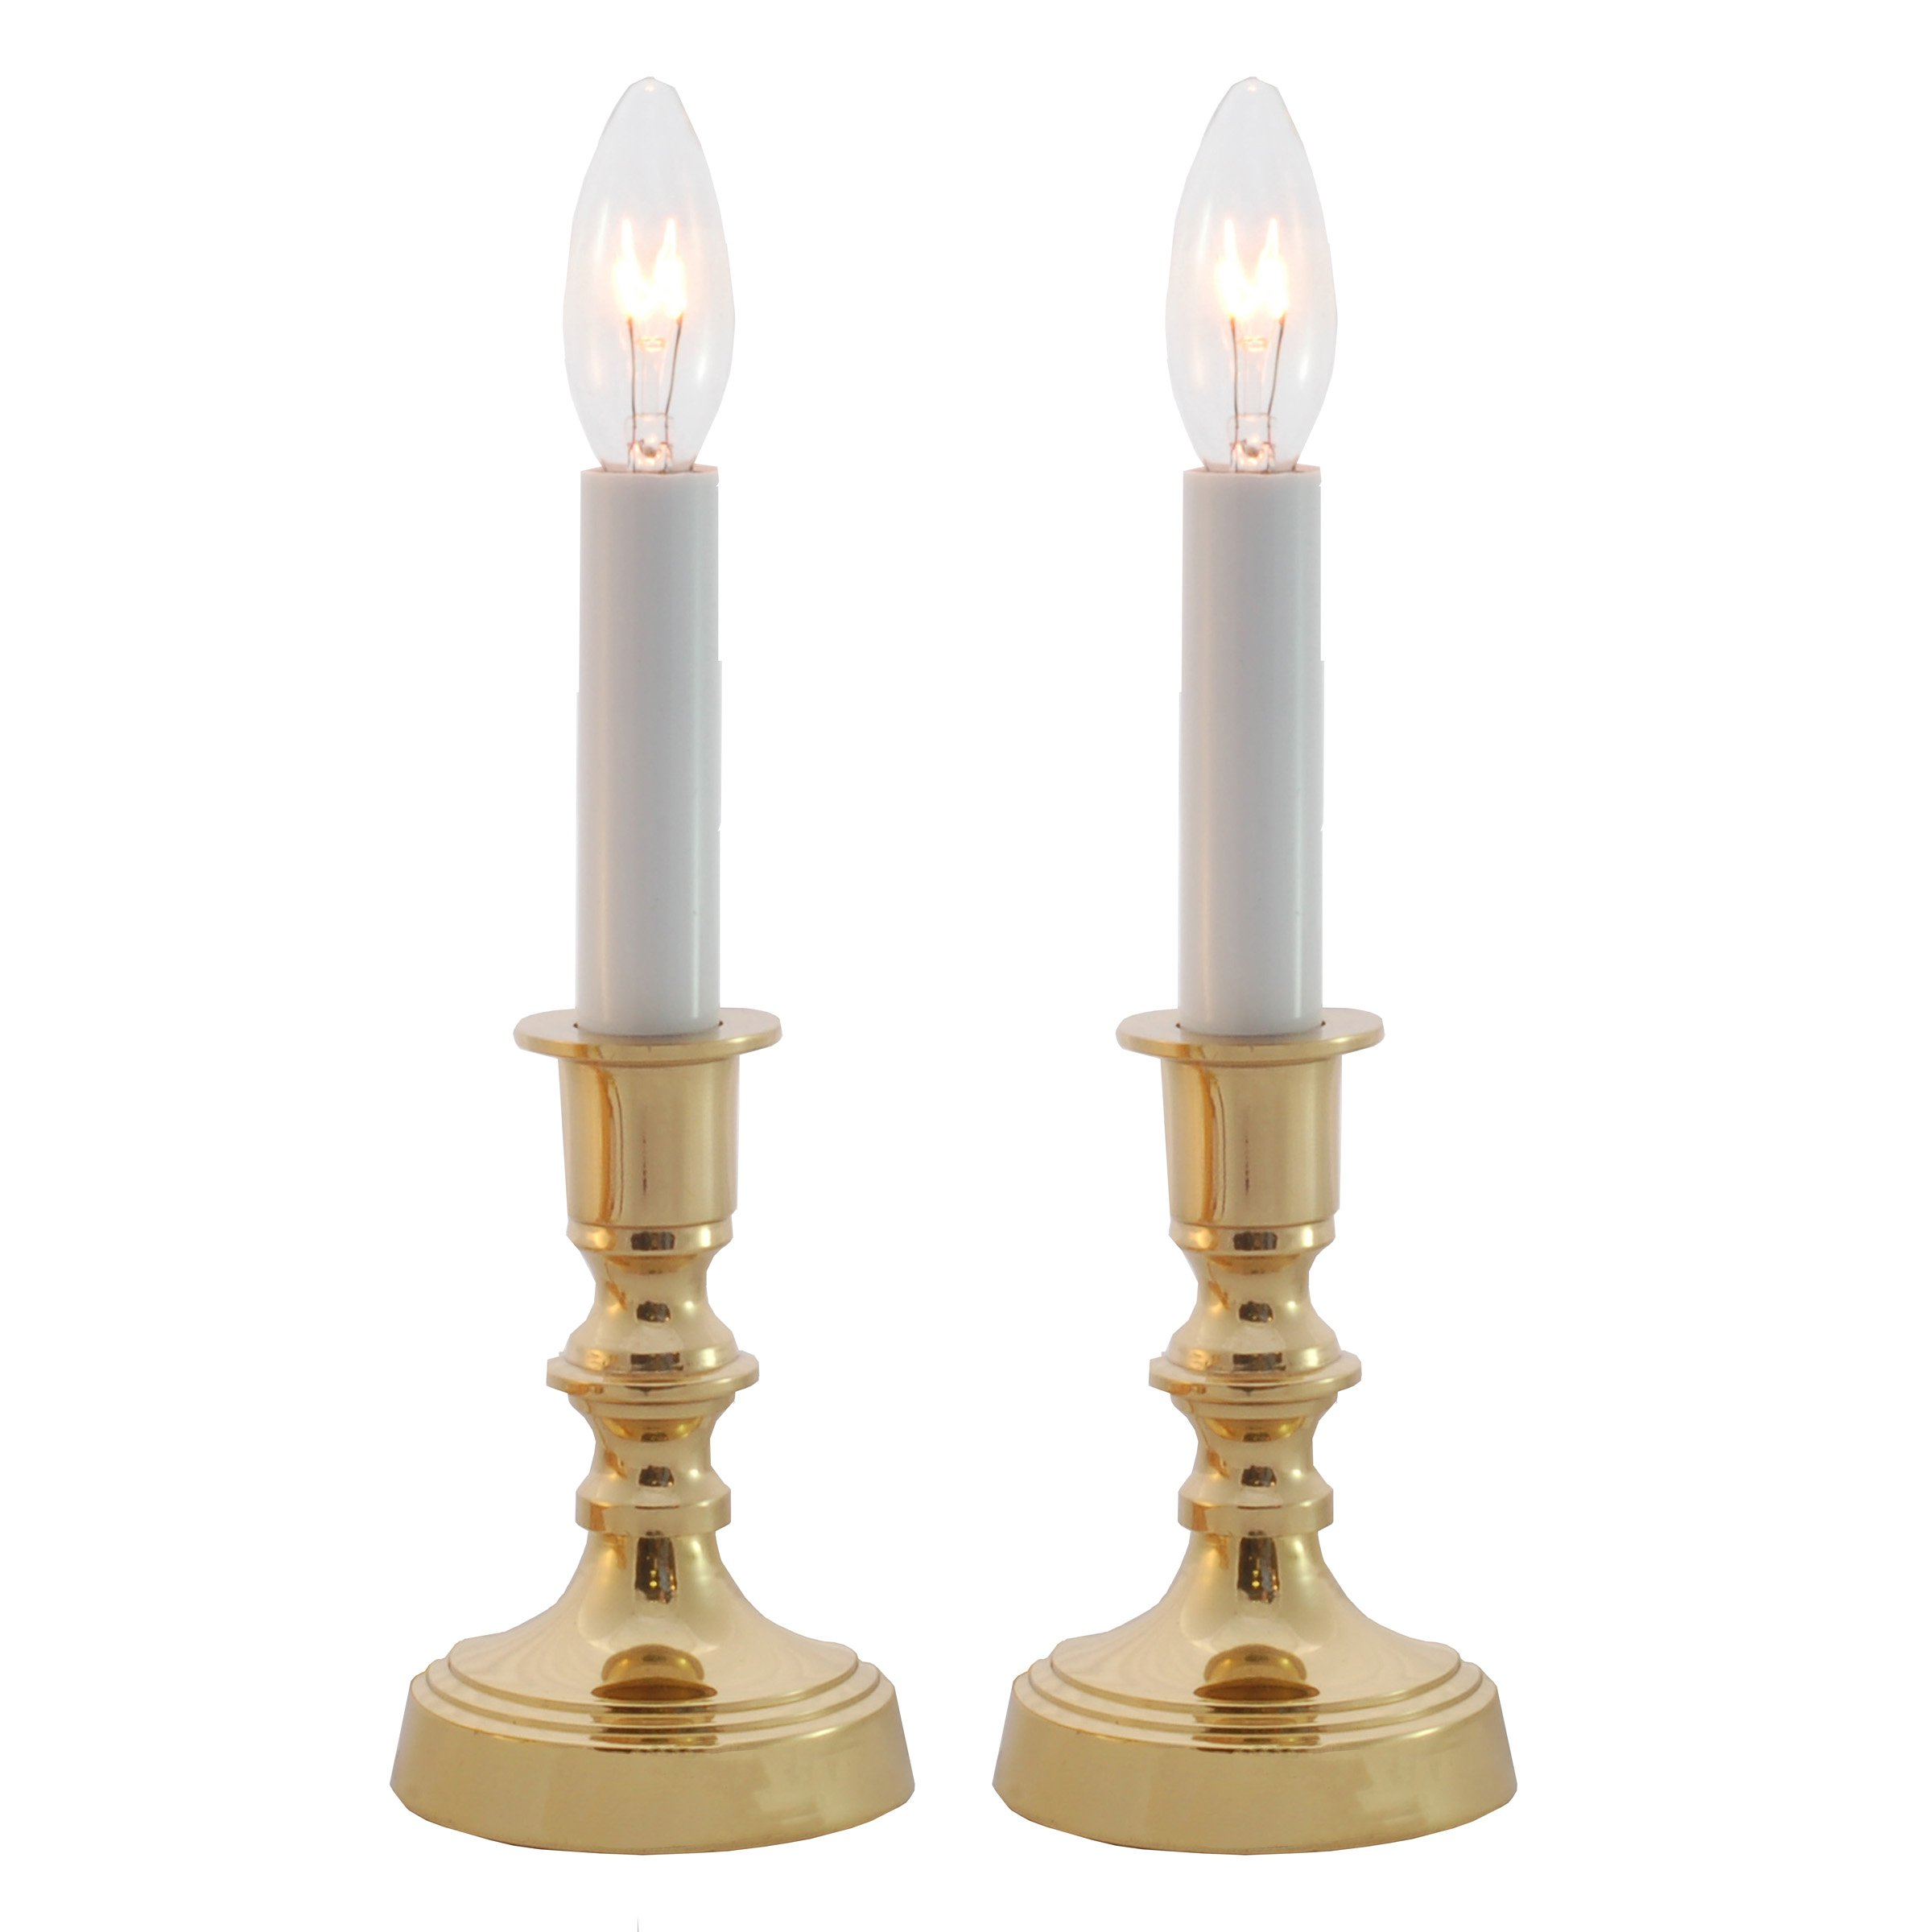 Solid Brass Window Accent Candle Lamp Set of 2 by Carpenter Creek